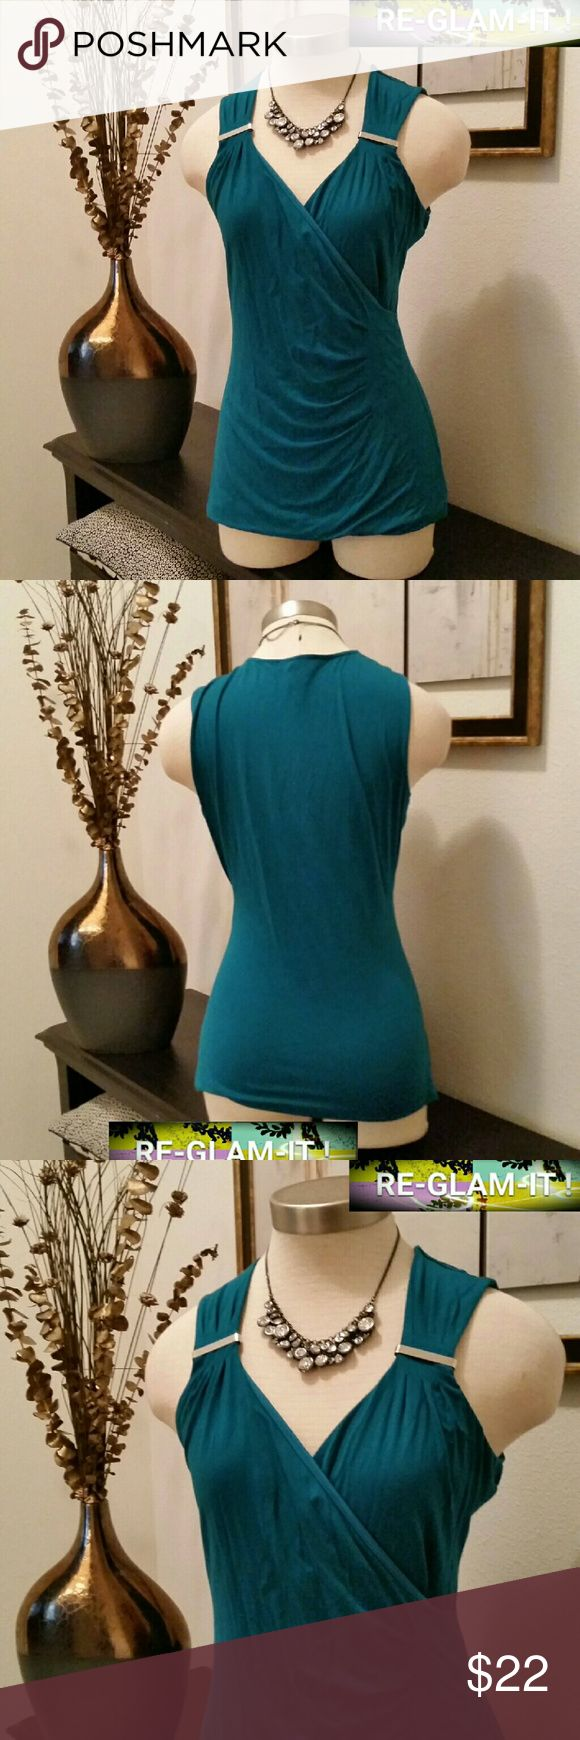 WHBM..NEW LISTING...BEAUTIFUL TURQUOISE TOP... ...ADDING INFO SOON..EXCELLENT CONDITION  ...NORMAL WEAR...NO FLAWS.. ...COLOR ....TEAL ...TURQUOISE  ...A MUST HAVEEE. ...LOOSE FEEL ...LOW DROP FRONT ...AS SHOWN White House Black Market Tops Blouses